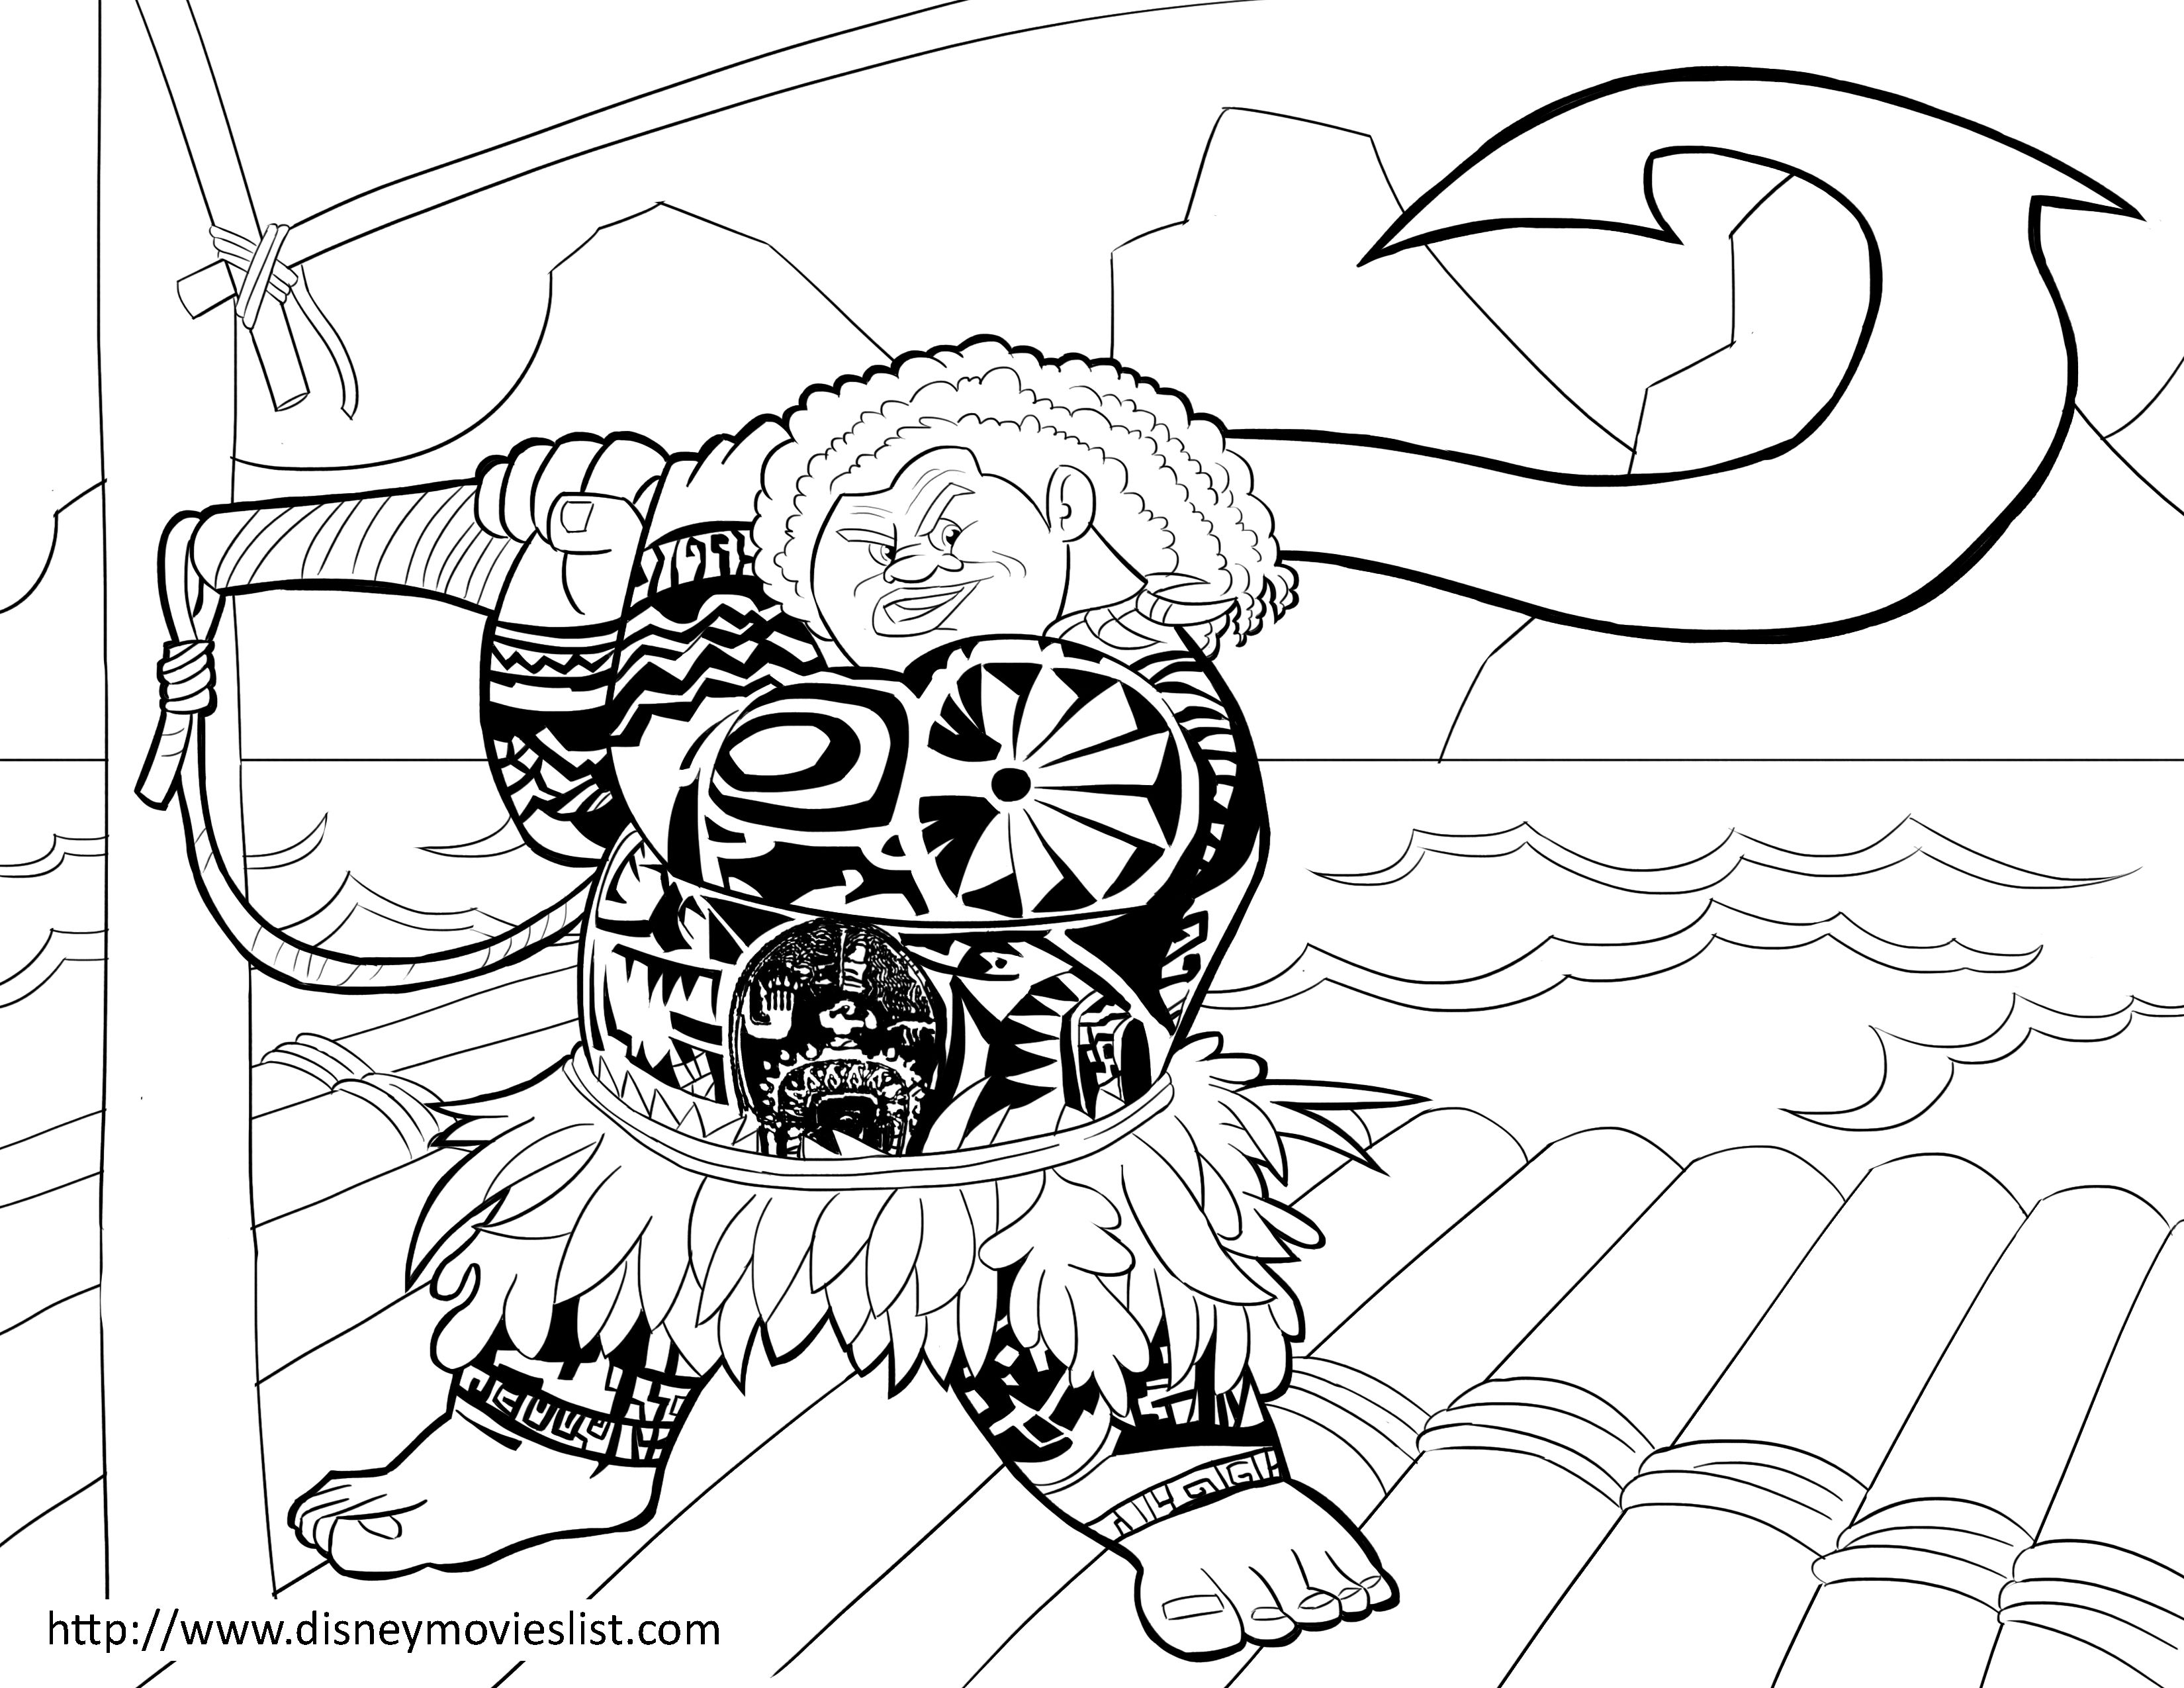 Moana coloring page. Maui pages at getdrawings